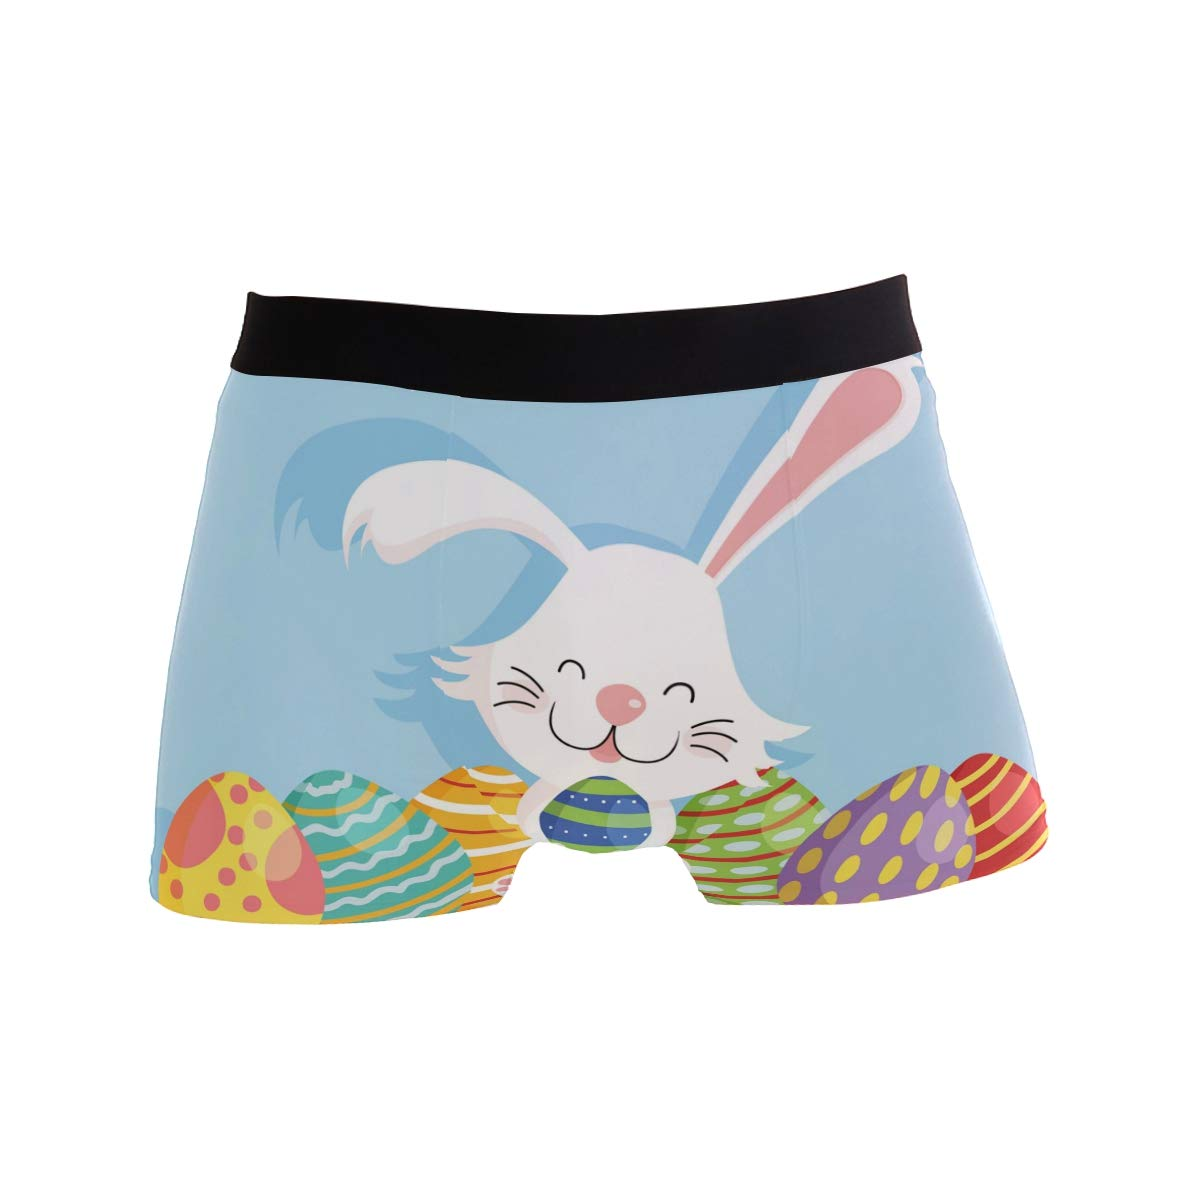 SUABO Men Boxer Briefs Polyester Underwear Men 2 Pack Boxer Briefs with Bunny with Eggs Pattern